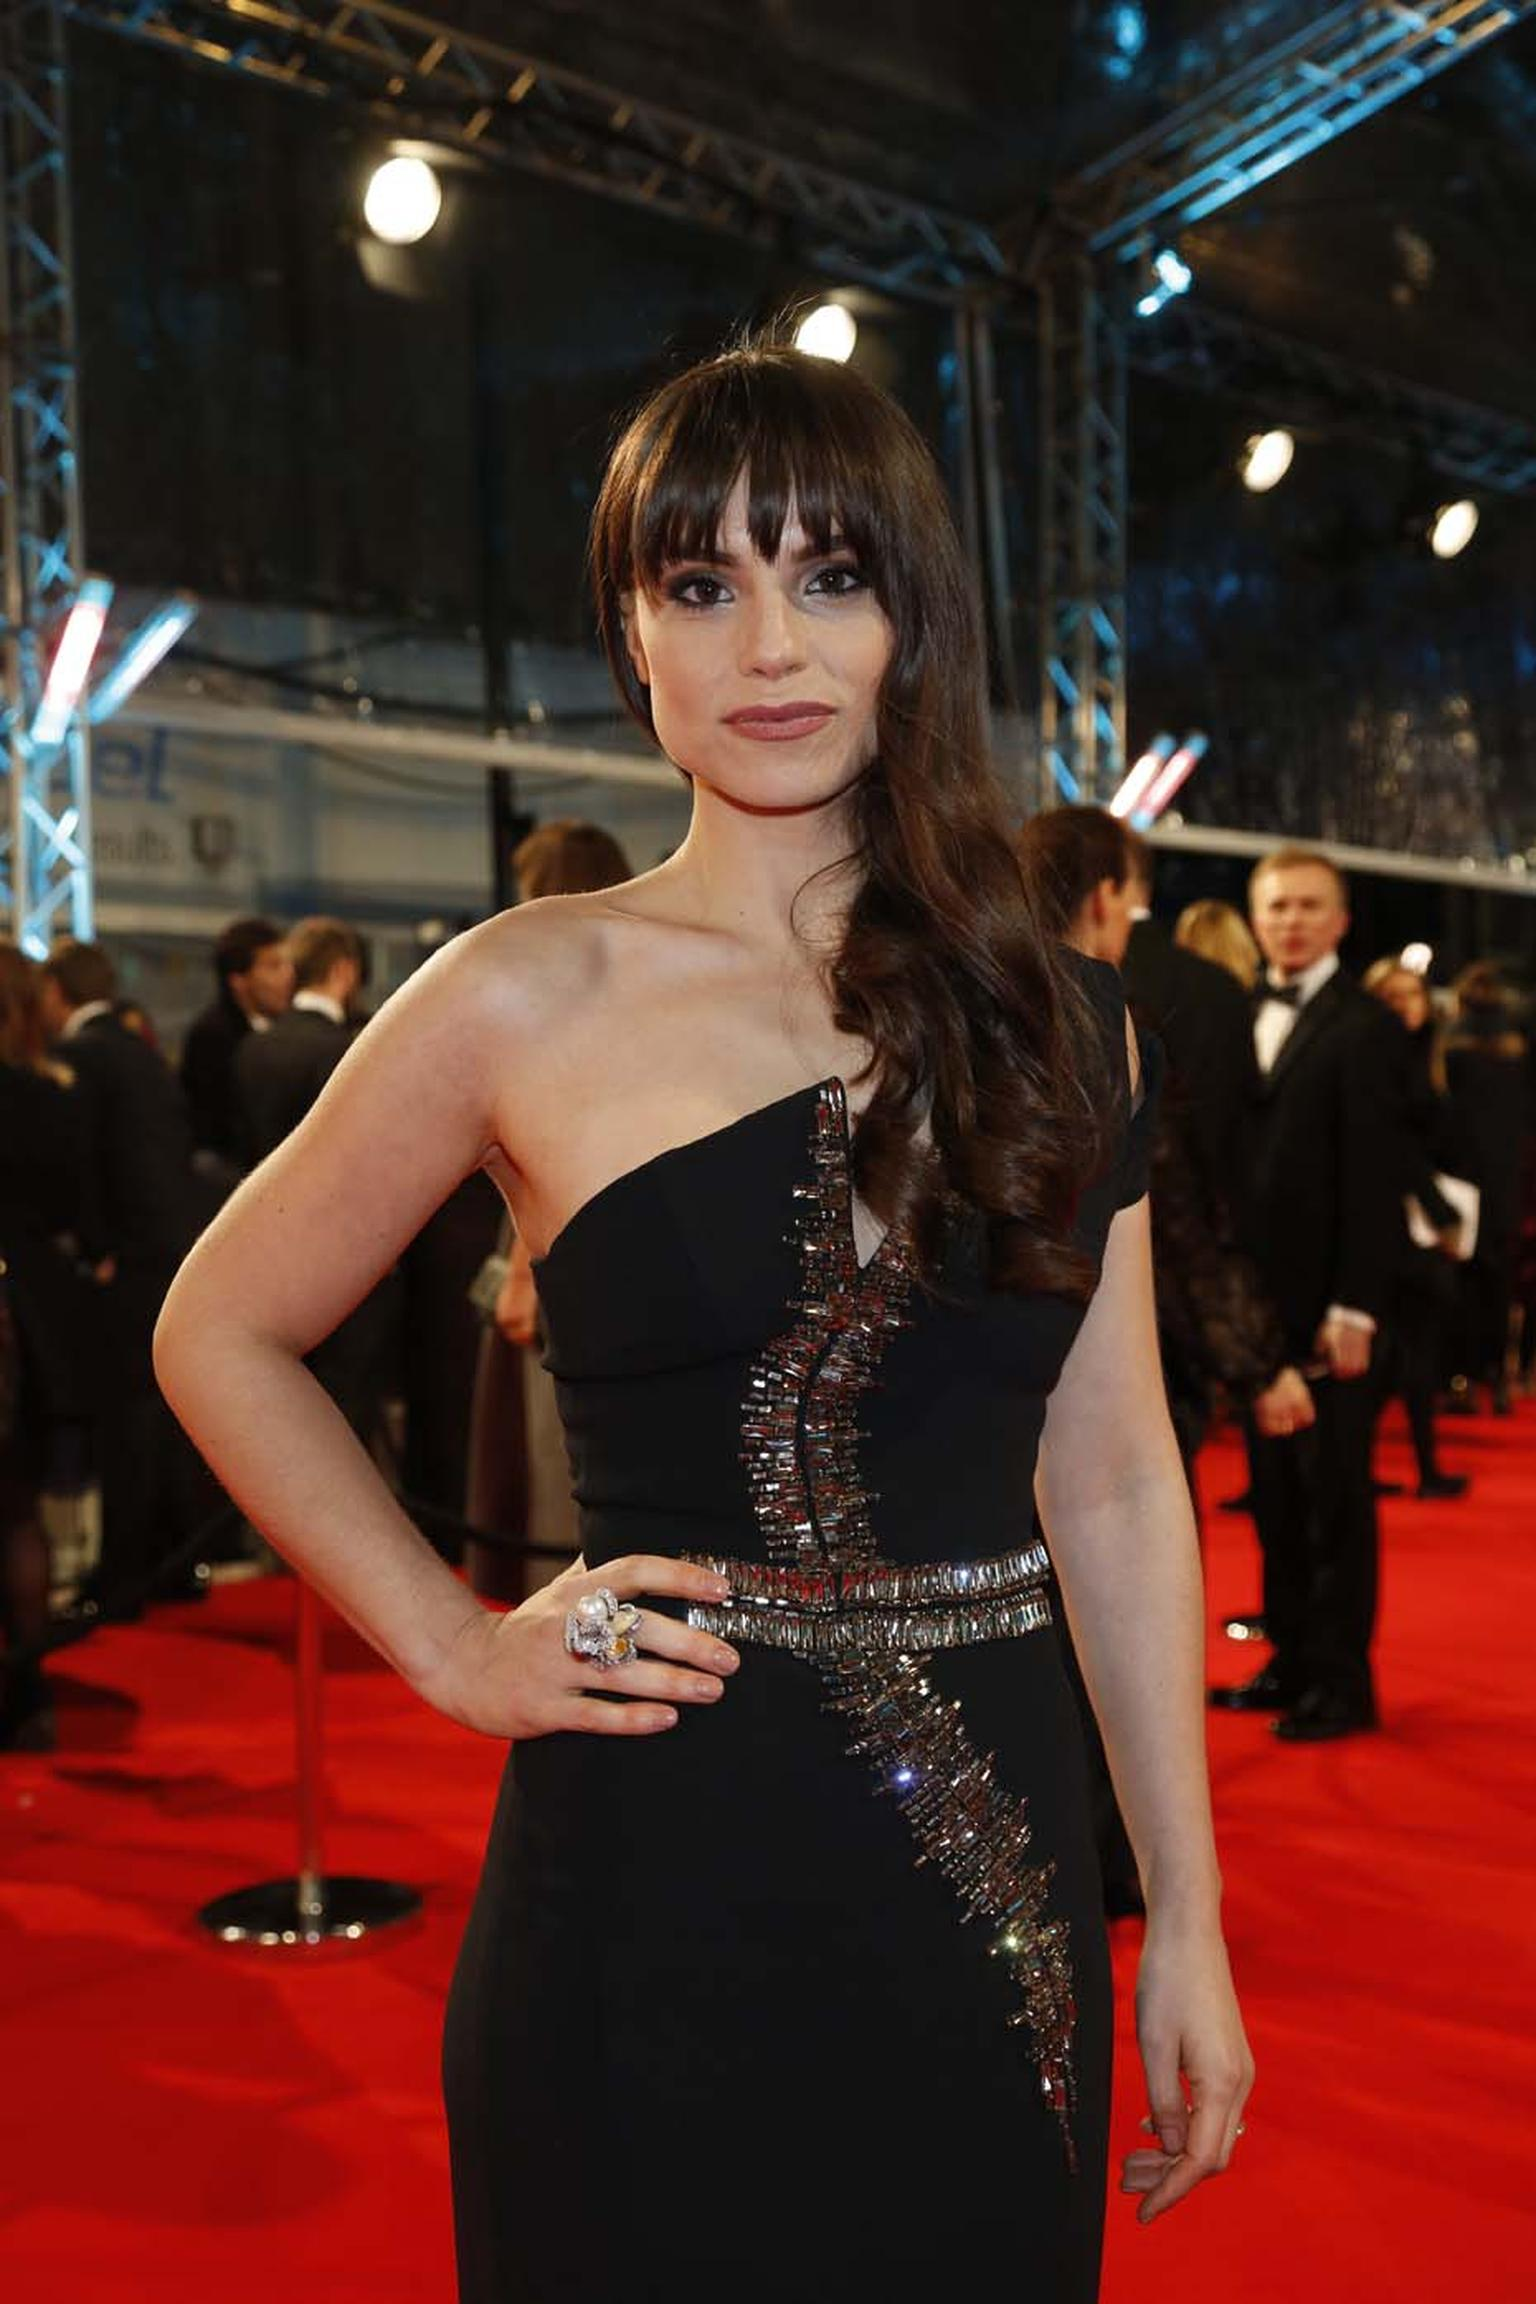 Charlotte Riley wore a YOKO London diamond and opal ring set with Australian South Sea and Tahitian pearls.